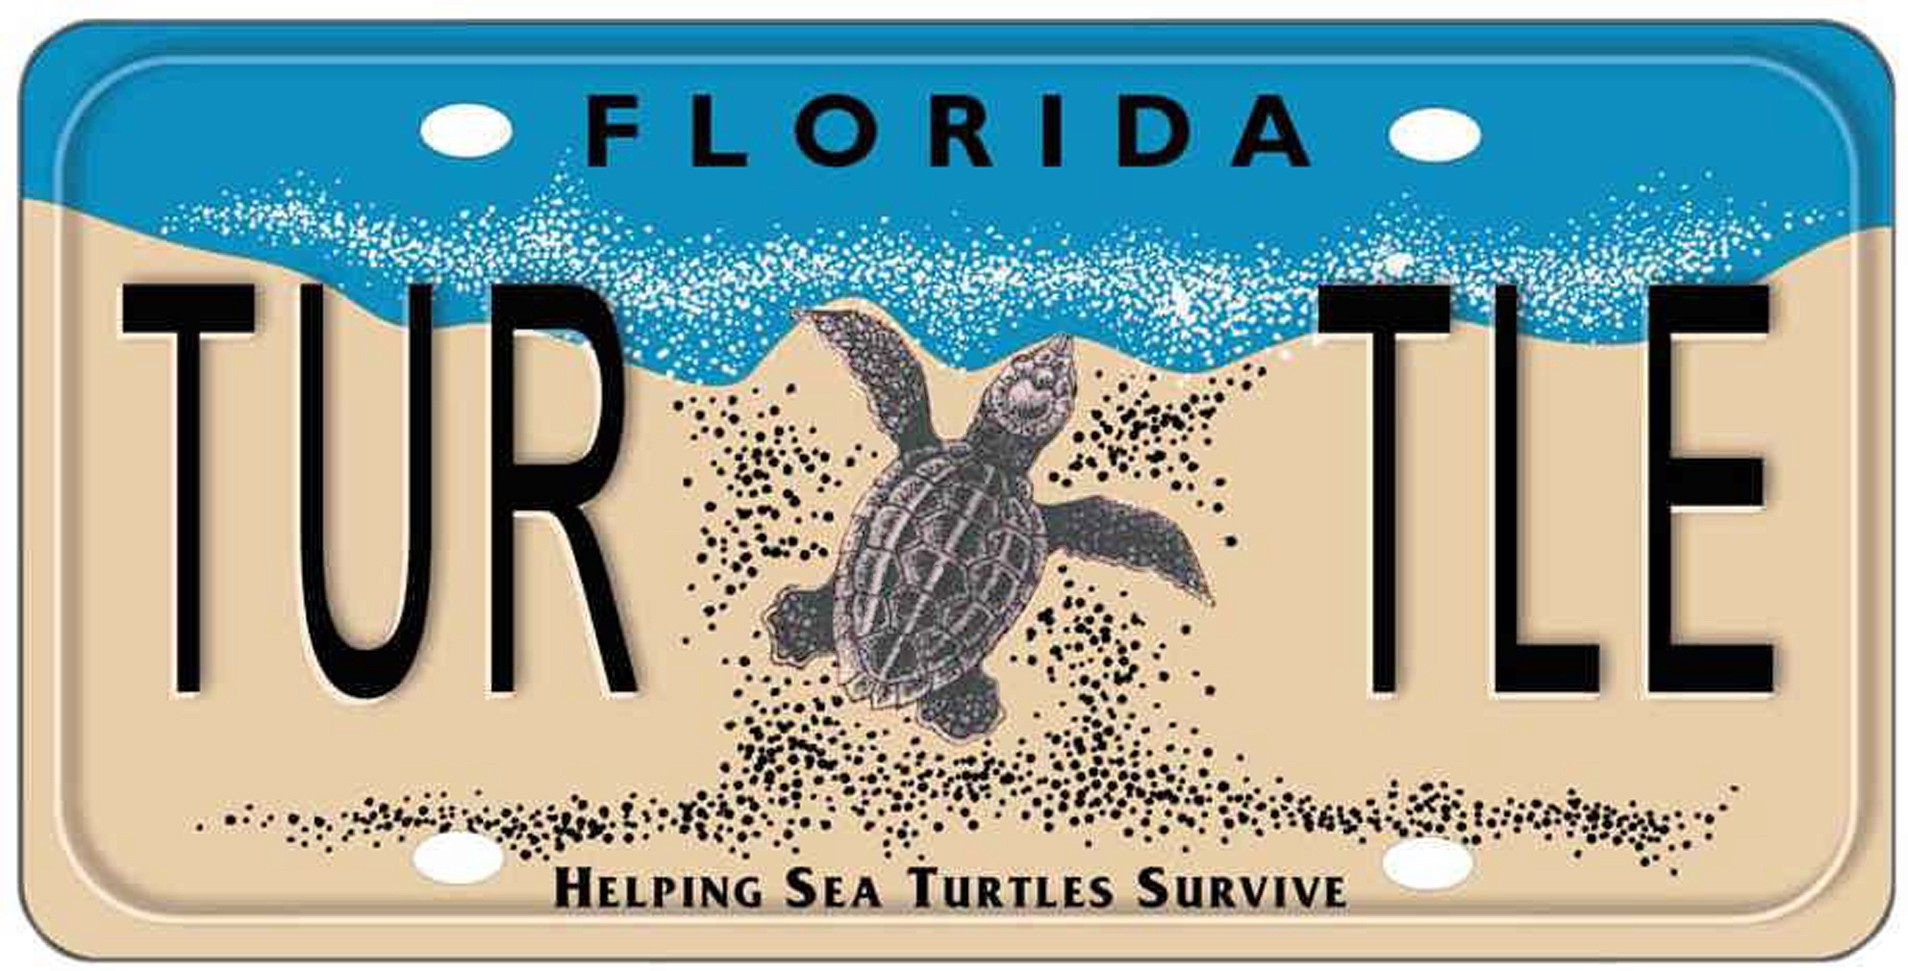 Plasticity, not Plastics, in the Diet of Kemp's Ridley Turtles